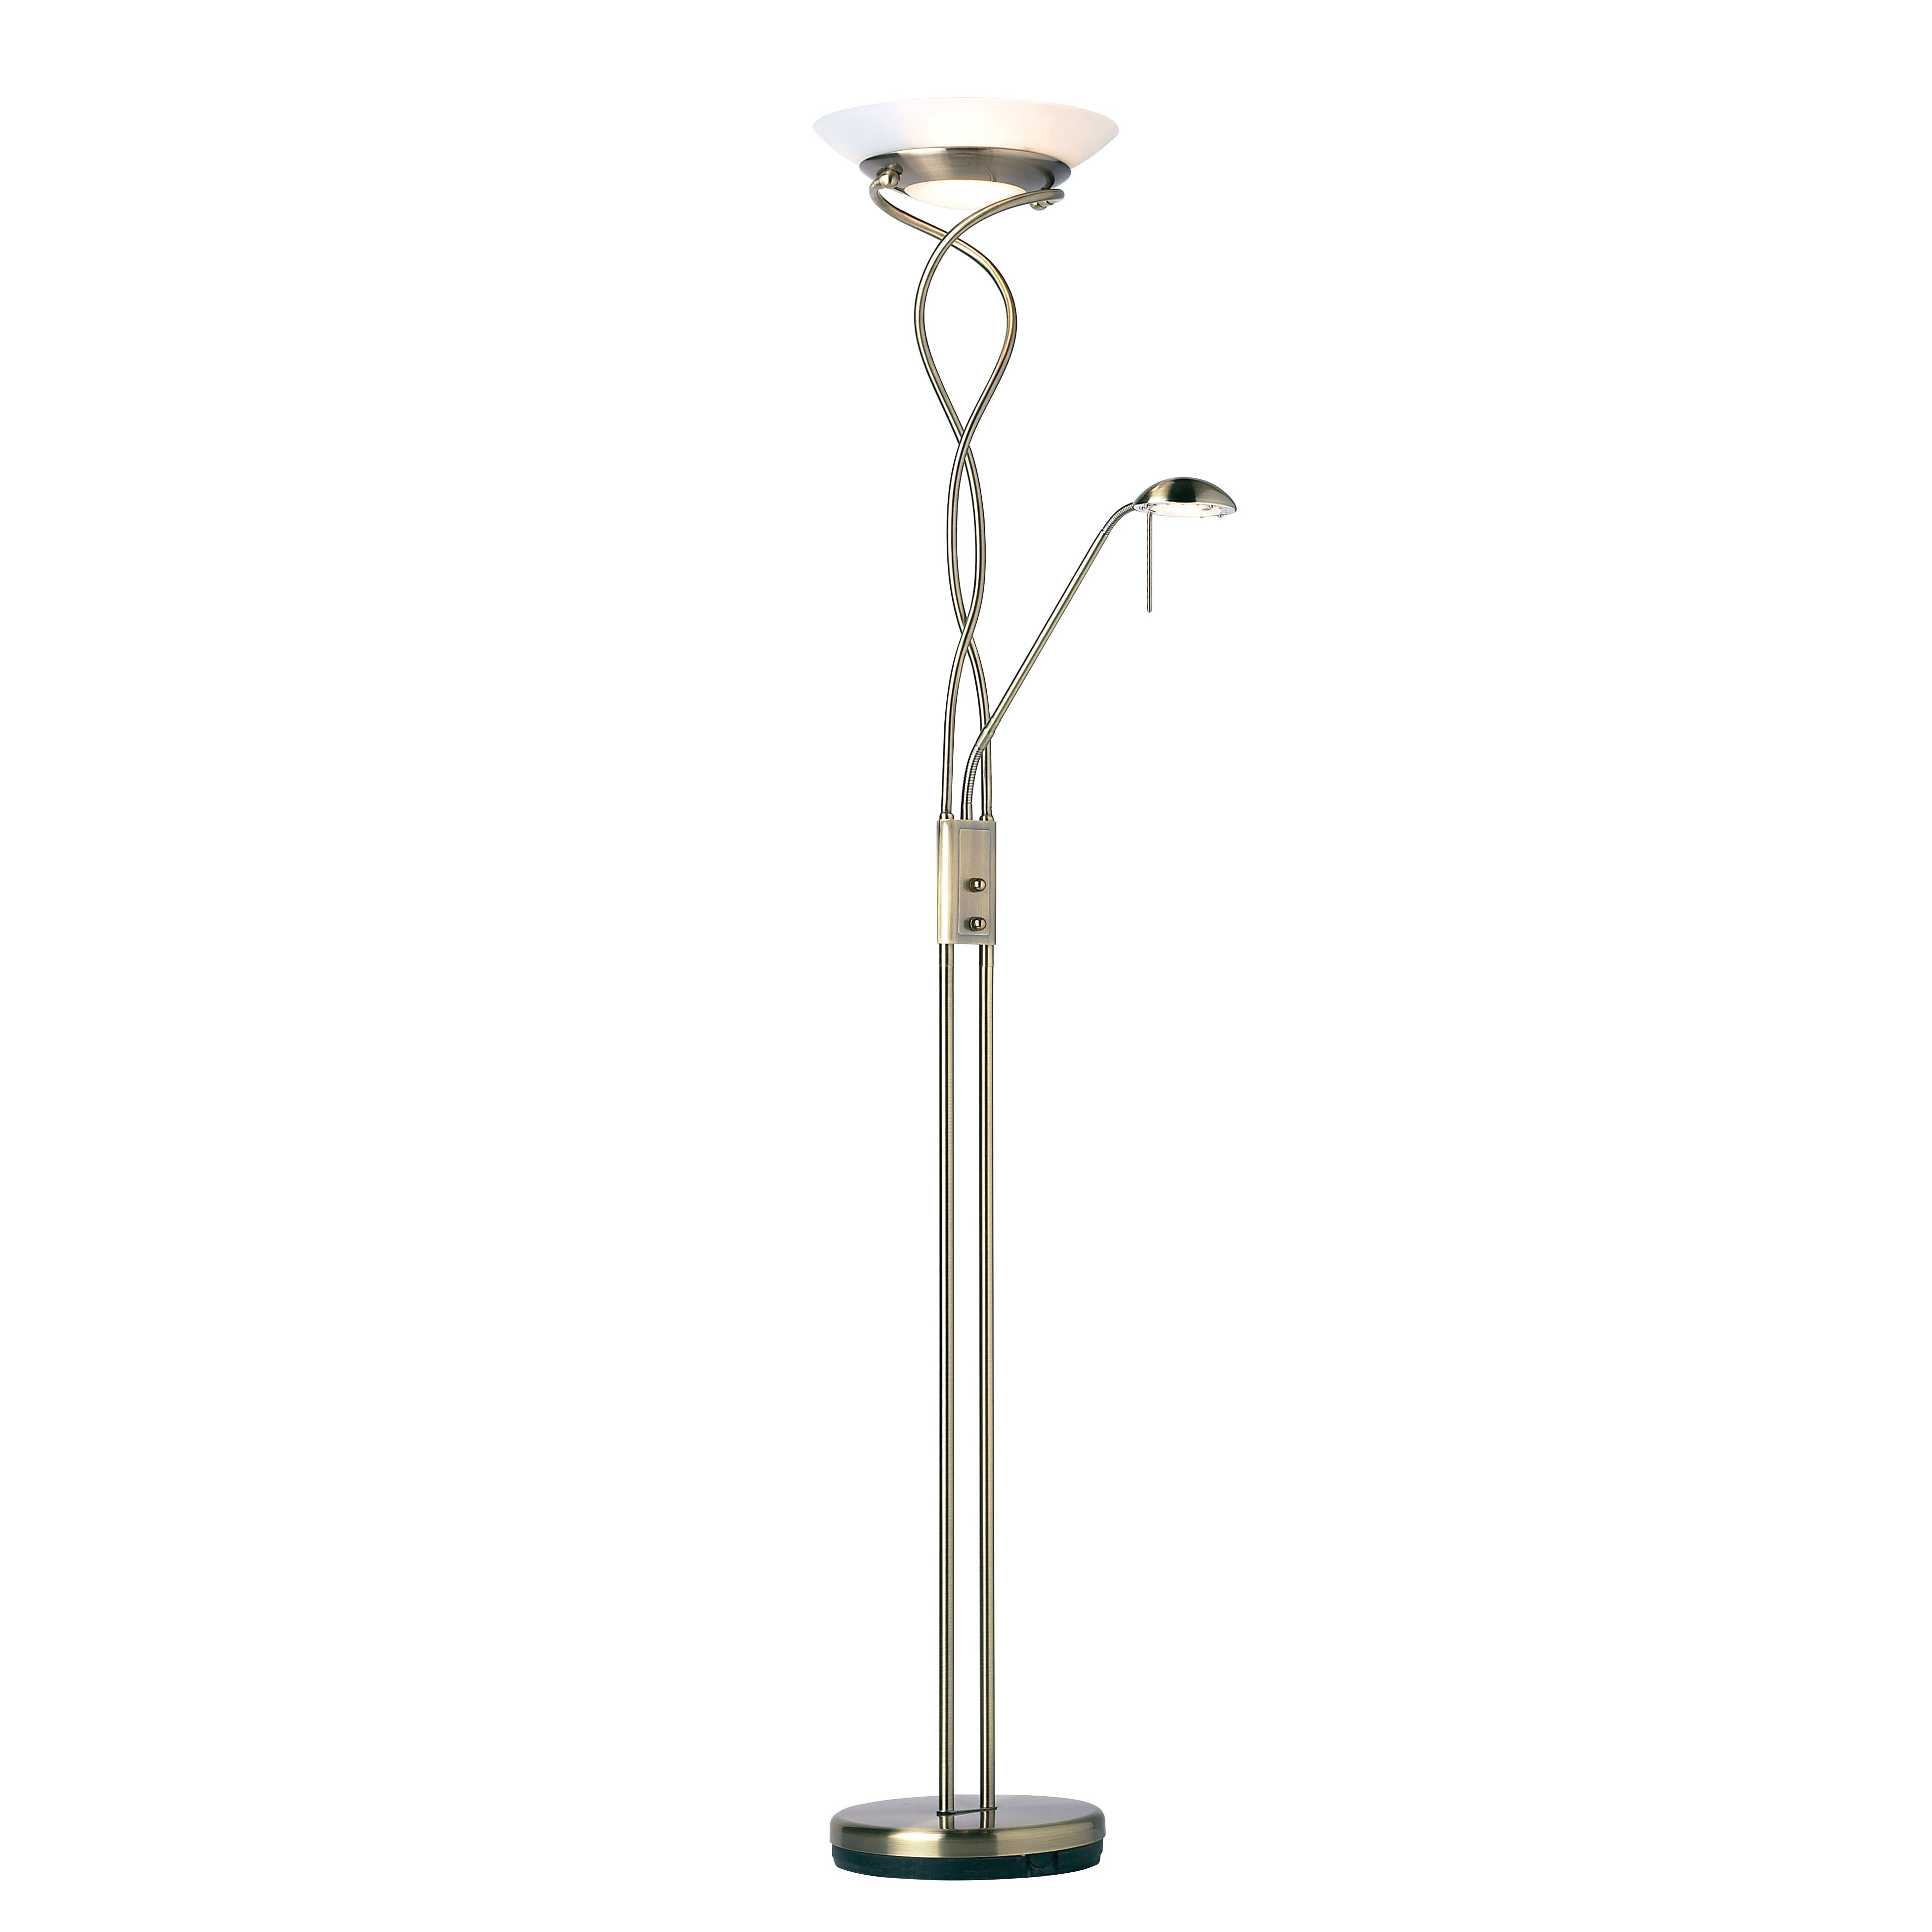 Uplighter Floor Lamps Uk: Endon Lighting Monaco 182cm Uplighter Floor Lamp,Lighting